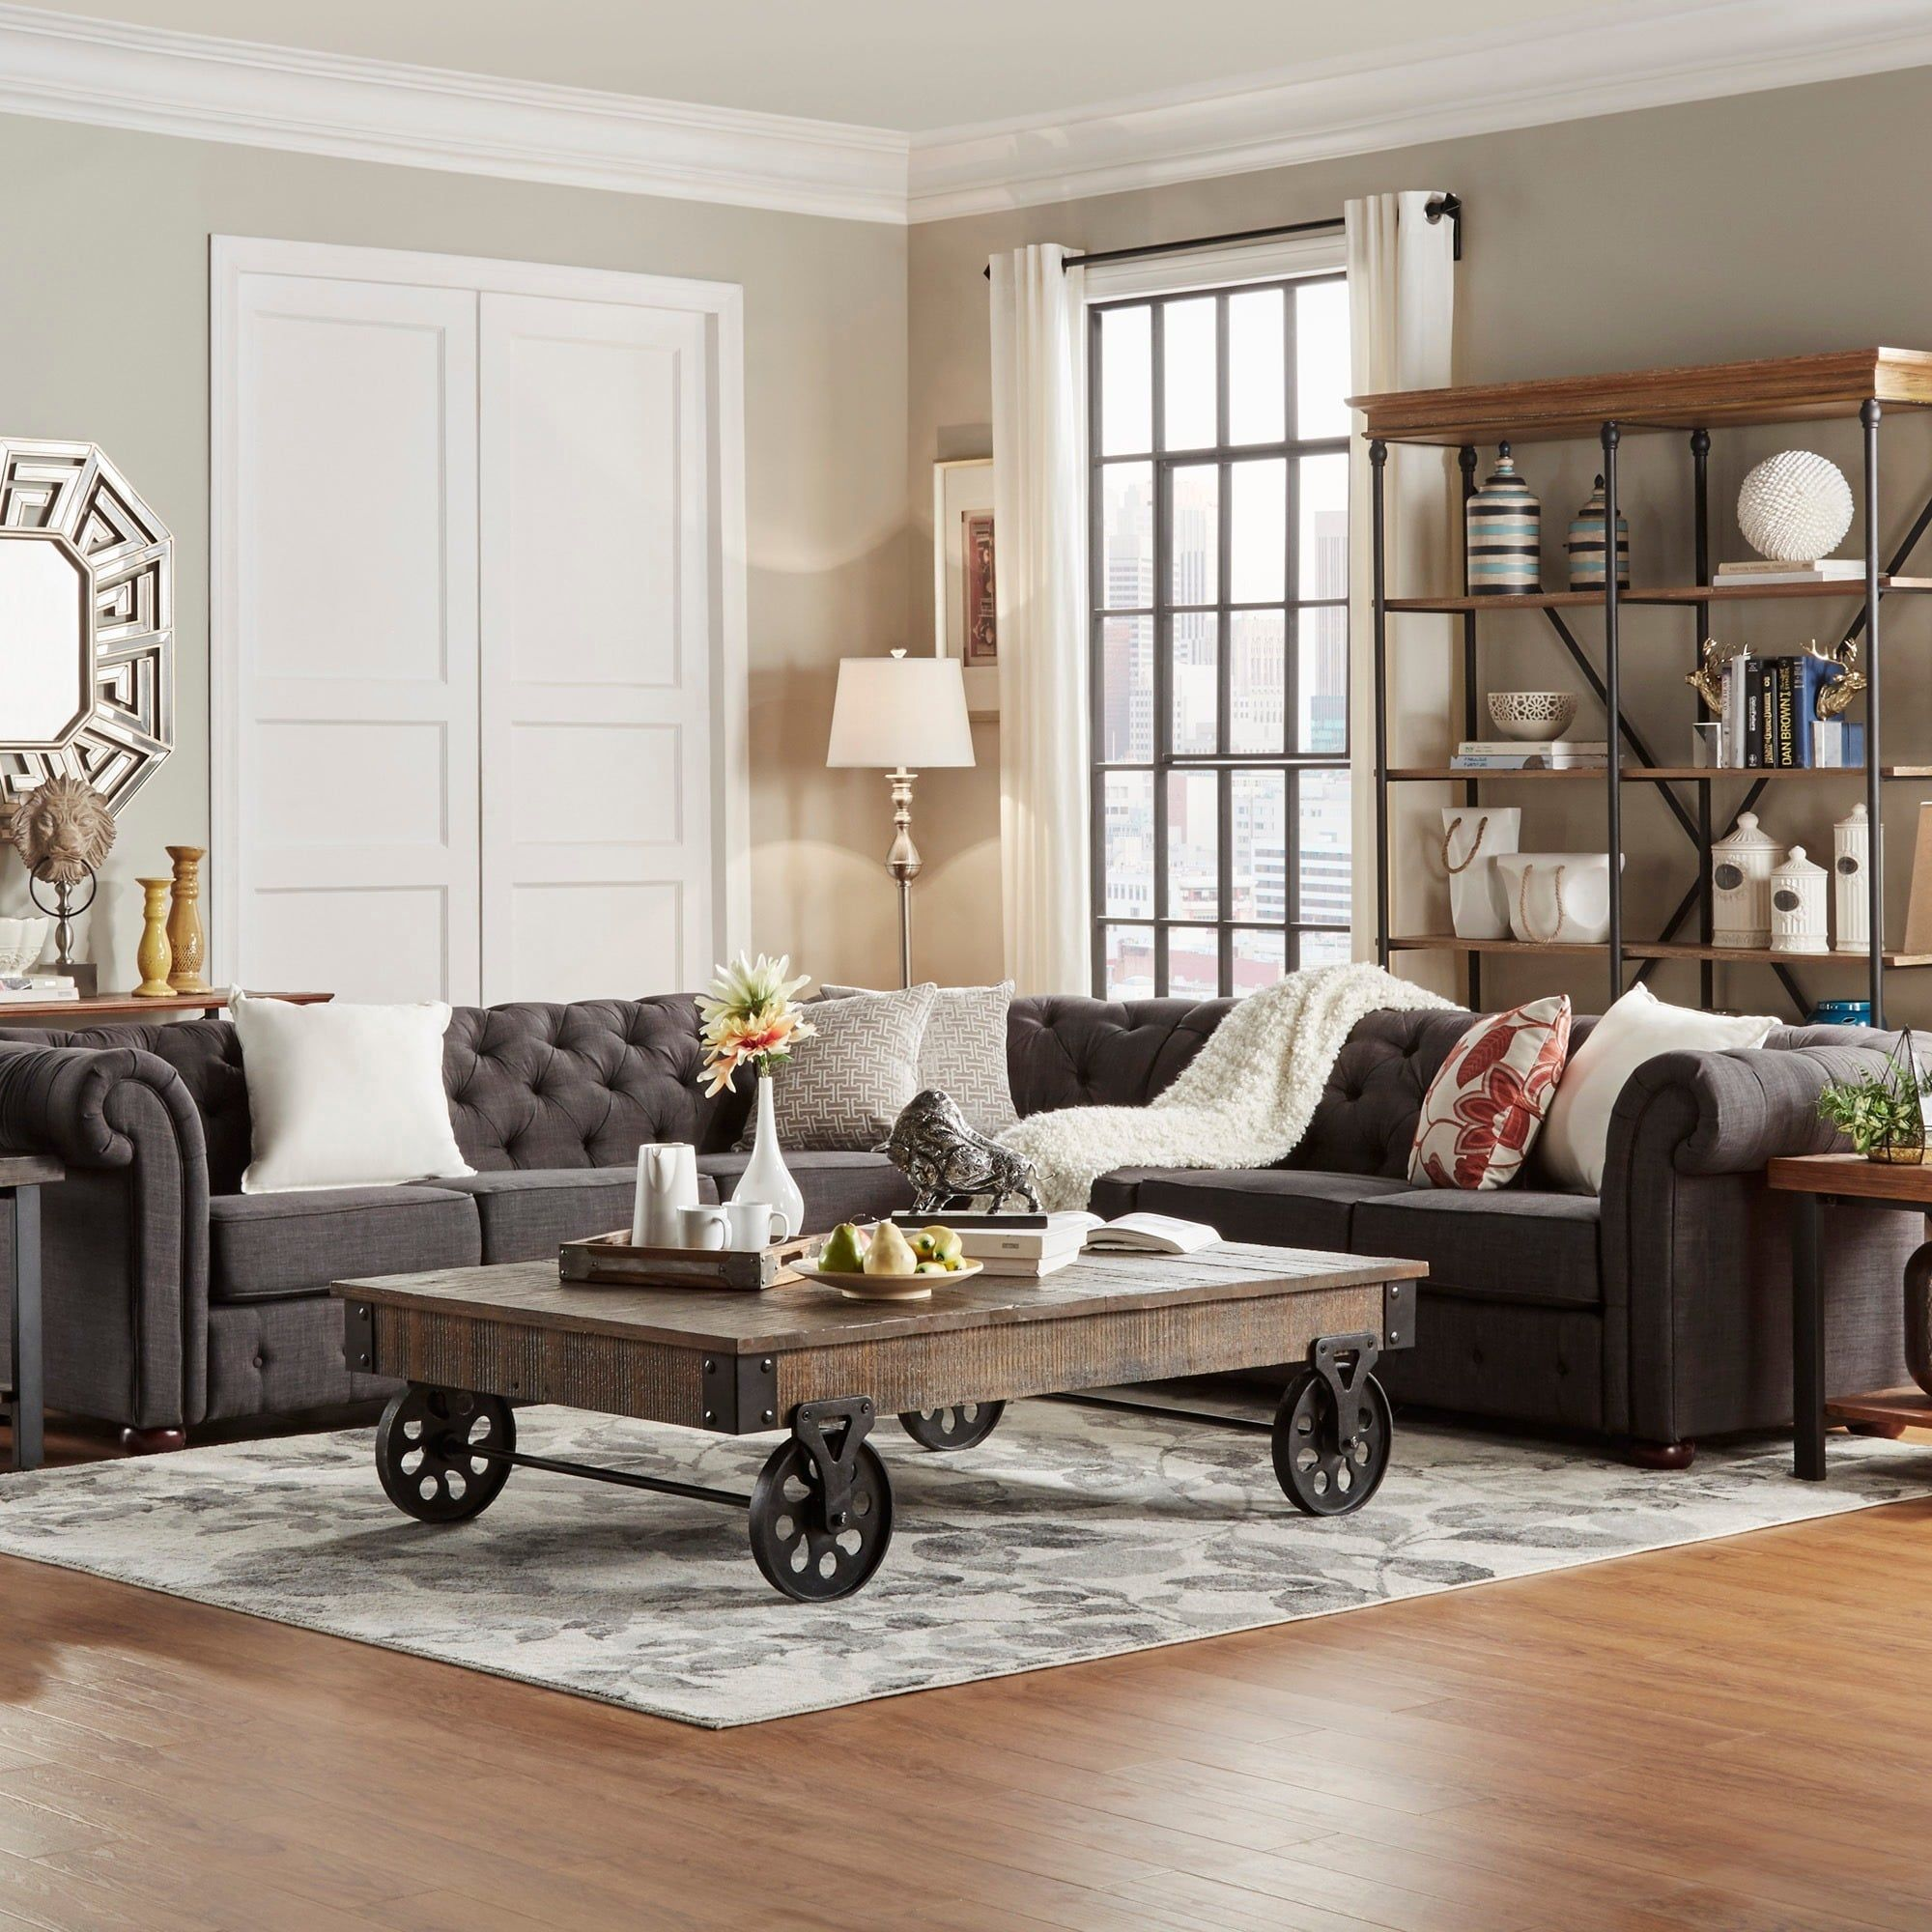 Knightsbridge Tufted Scroll Arm Chesterfield 7-seat L-shaped Sectional by  iNSPIRE Q Artisan (Beige Linen), Brown (Bonded Leather)